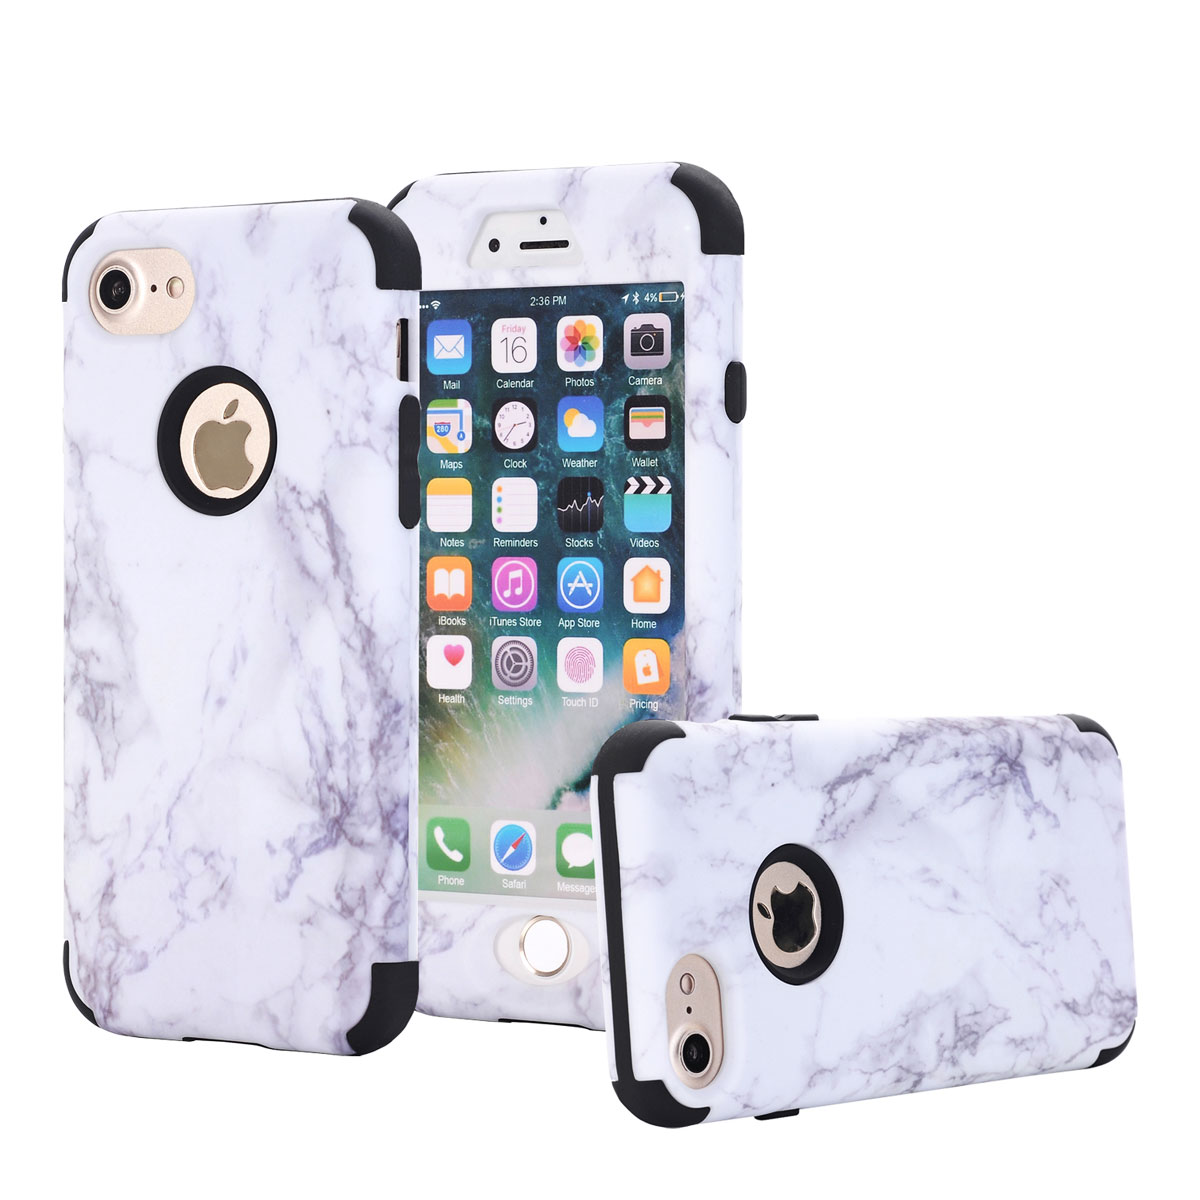 iphone protective cases marble pattern bumper protective cover for apple 12164